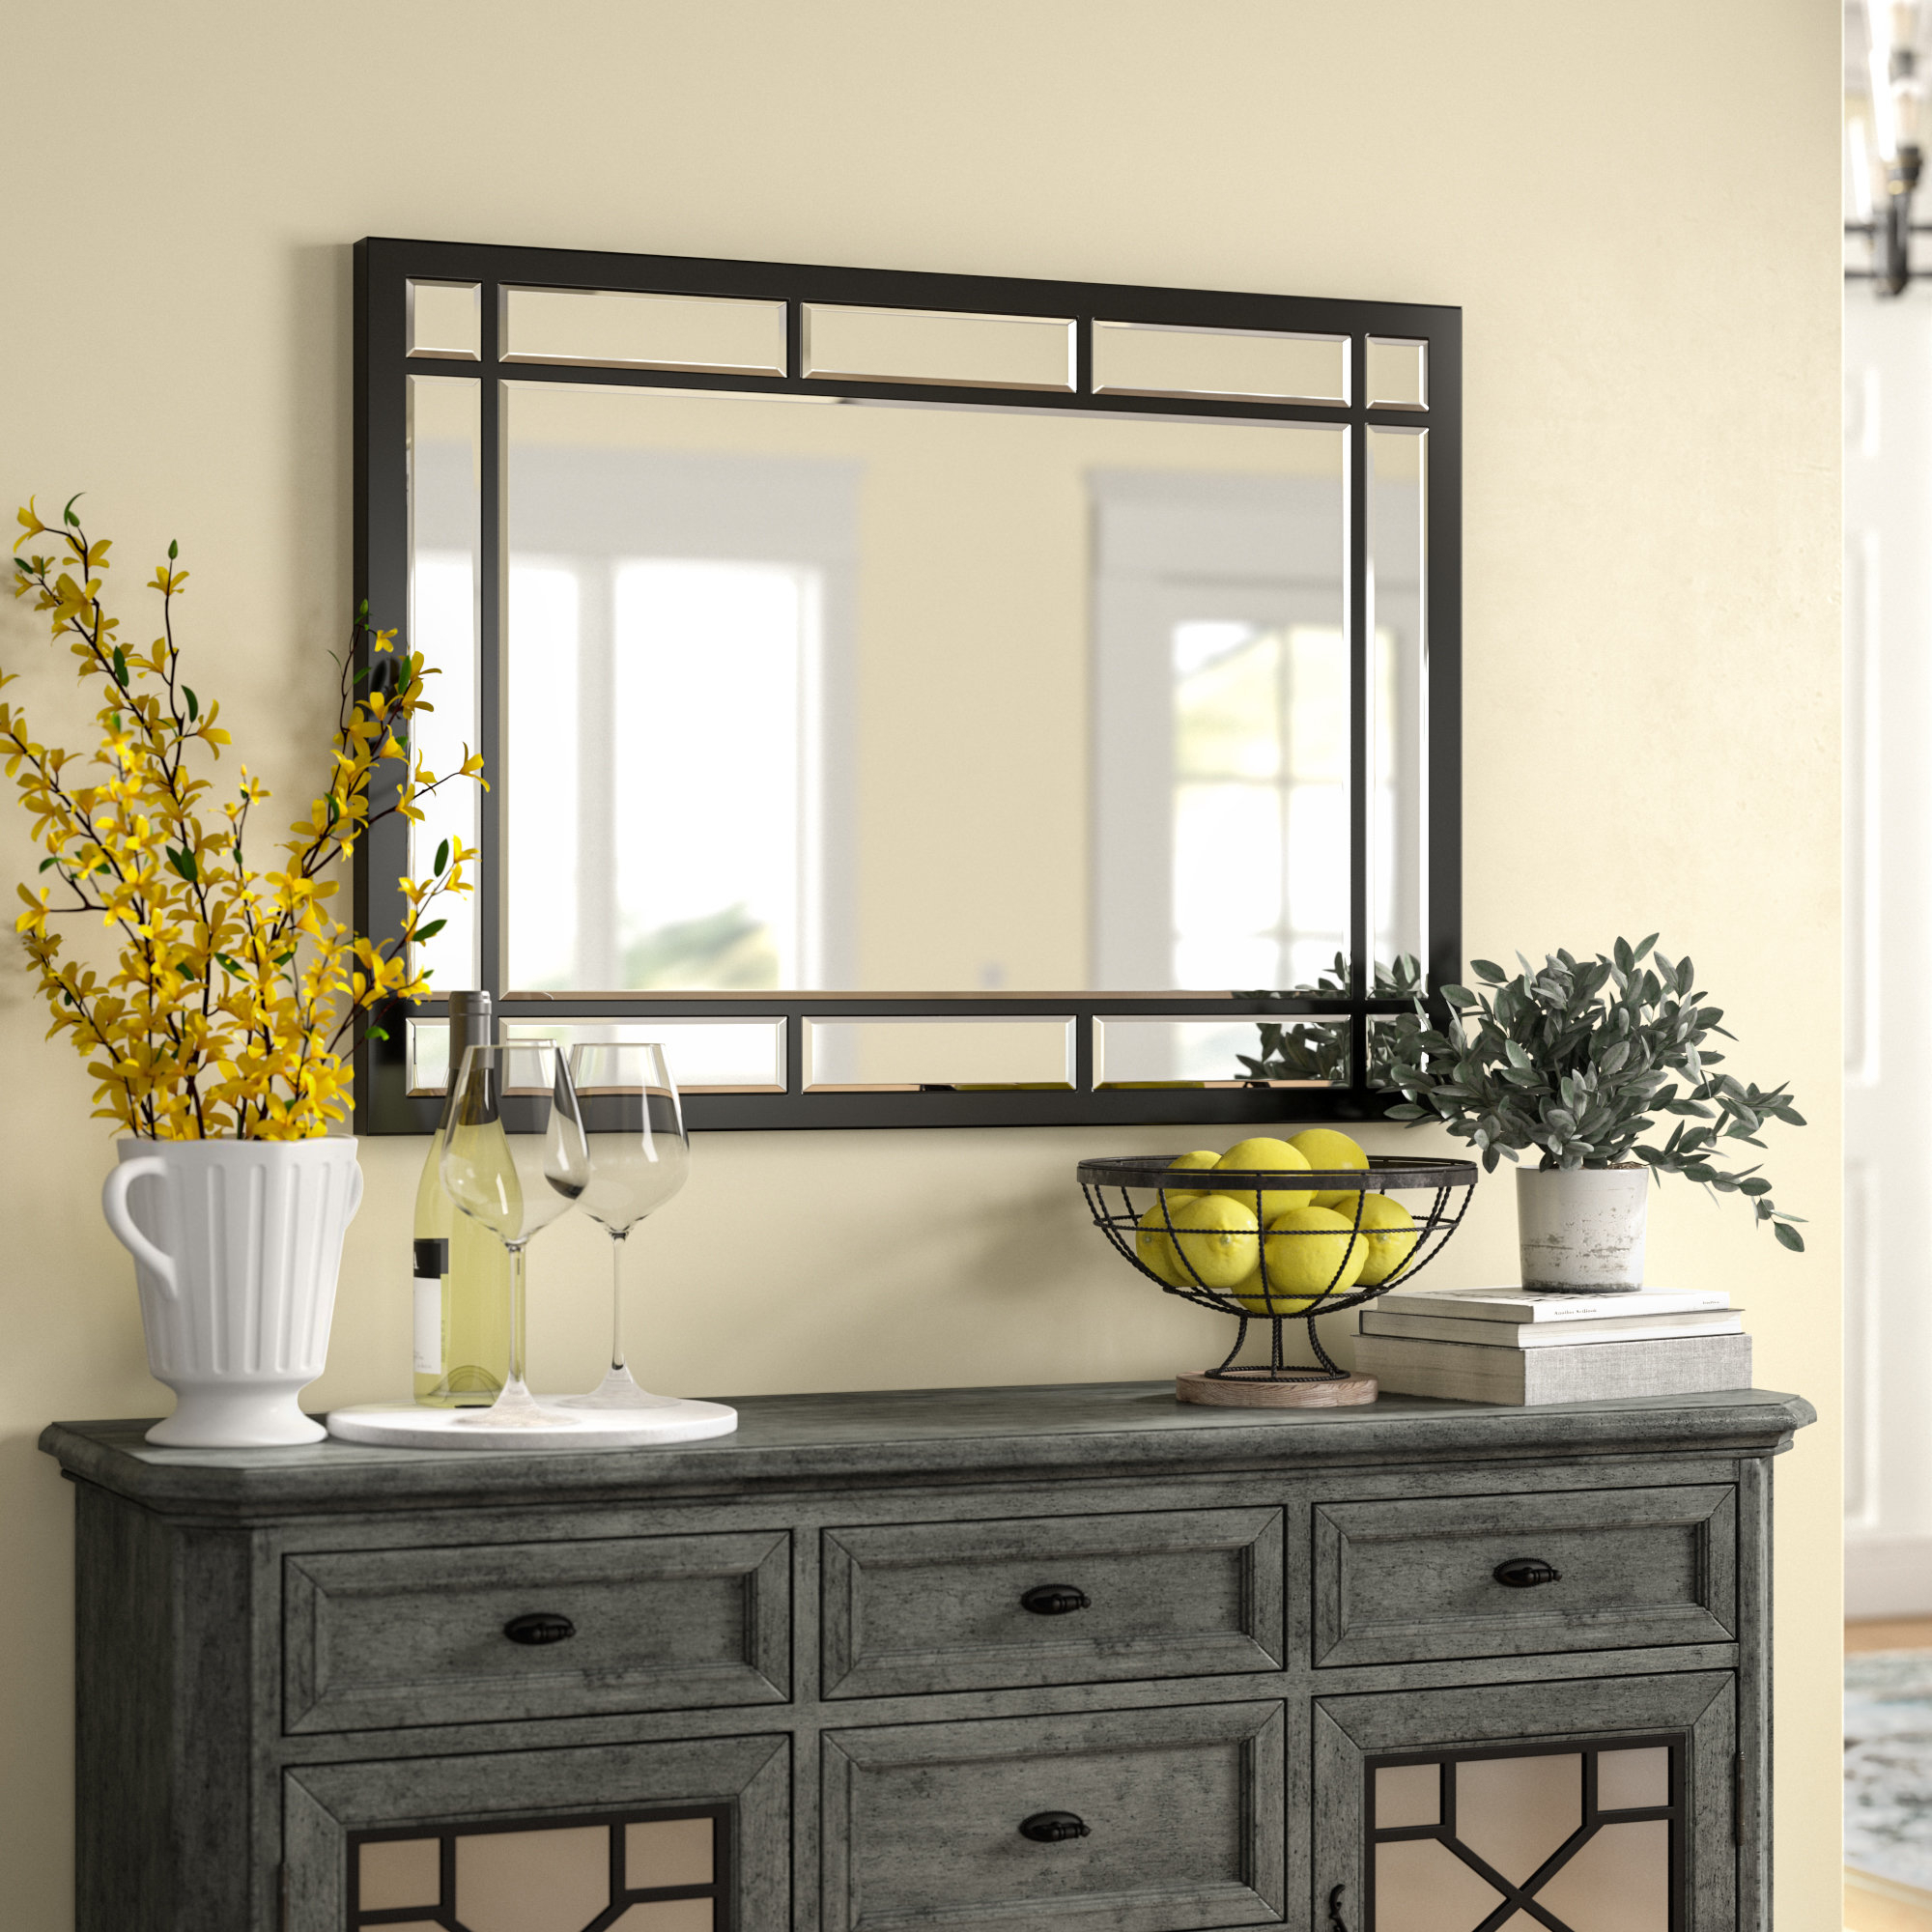 Whalen Traditional/modern And Contemporary Accent Mirror throughout Hub Modern and Contemporary Accent Mirrors (Image 30 of 30)